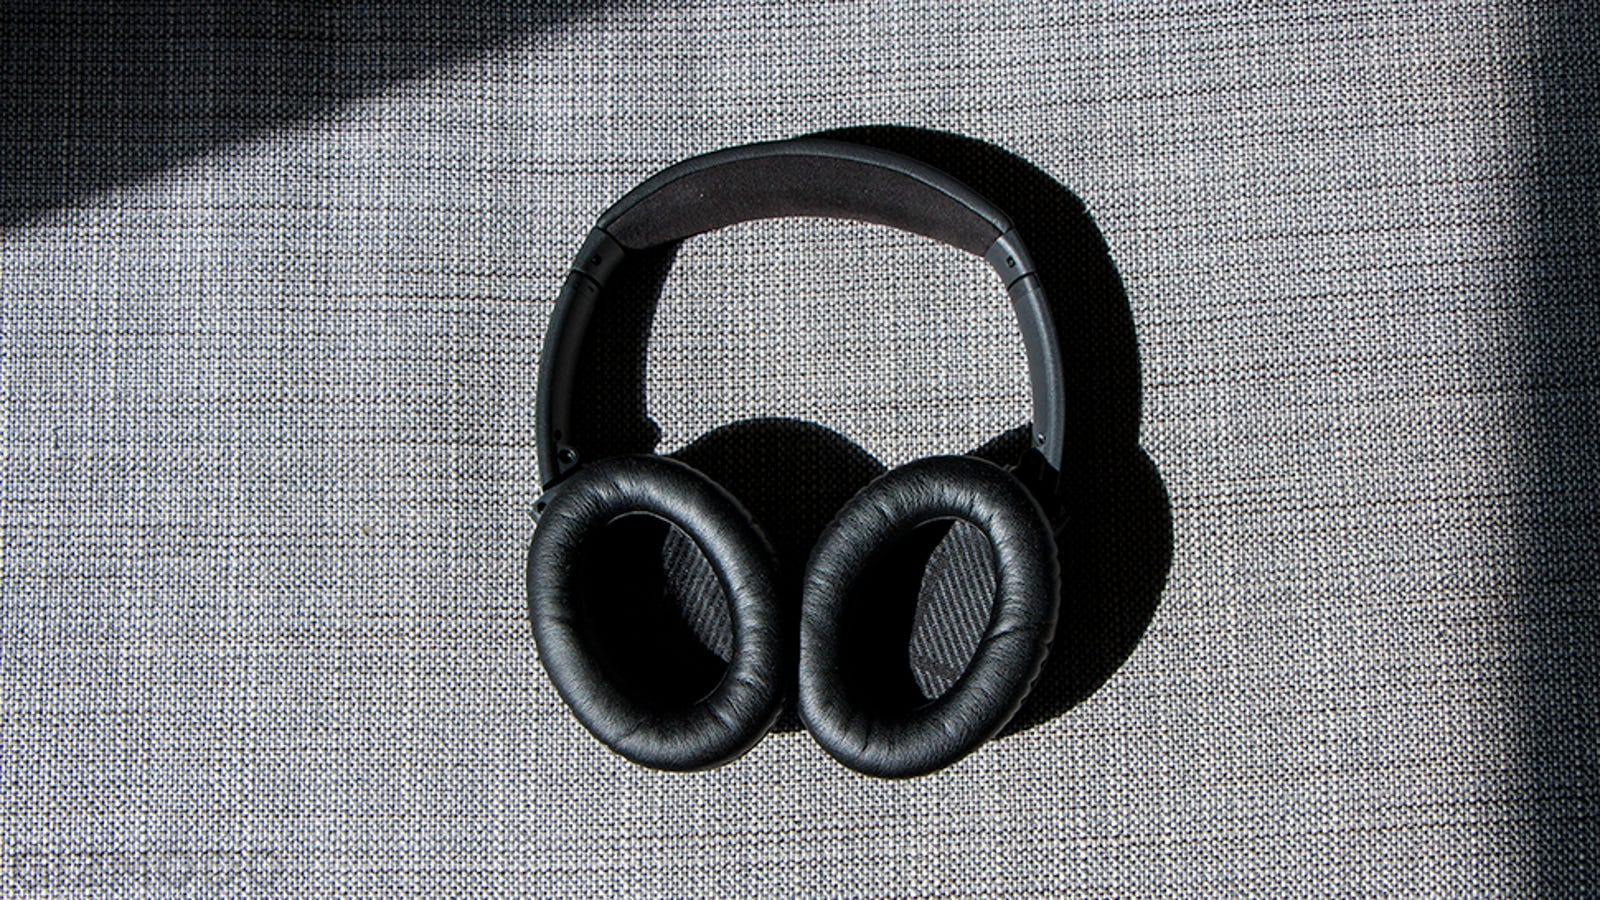 Bass jaxx wireless headphones - headphones wireless on ear